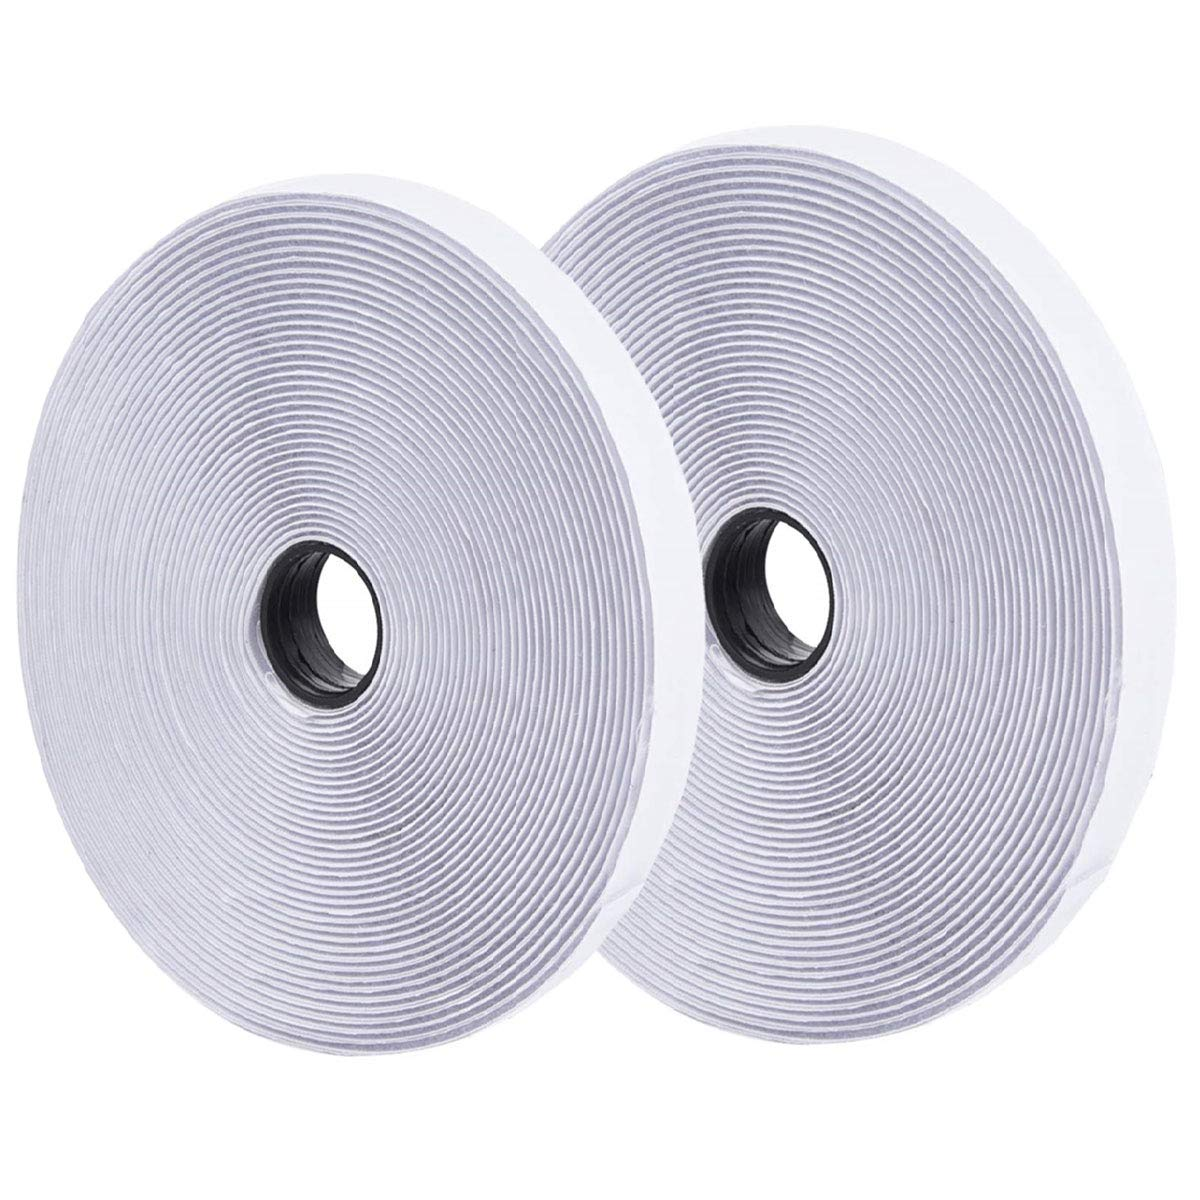 ONEST 82 Feet /25m White Self Adhesive Hook and Loop Tape Sticky Back Fastening Tape by ONEST